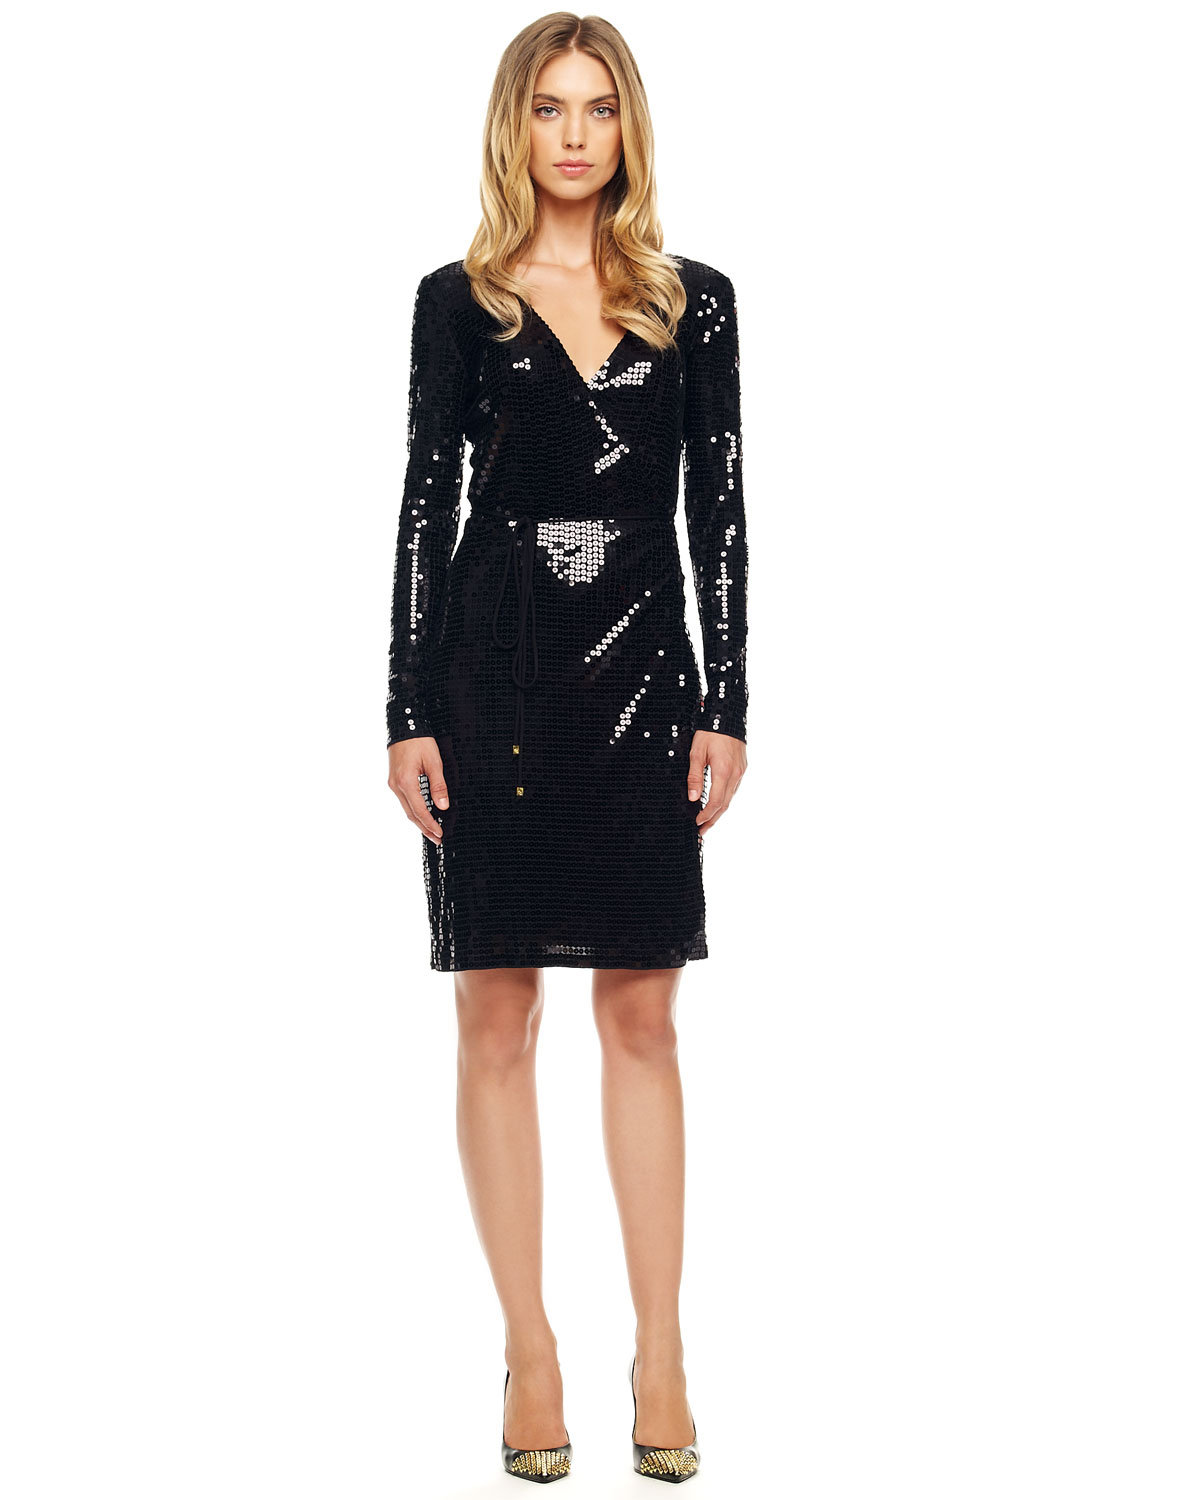 Cool Michael Kors Dress - Clothing - MIC27632 | The RealReal